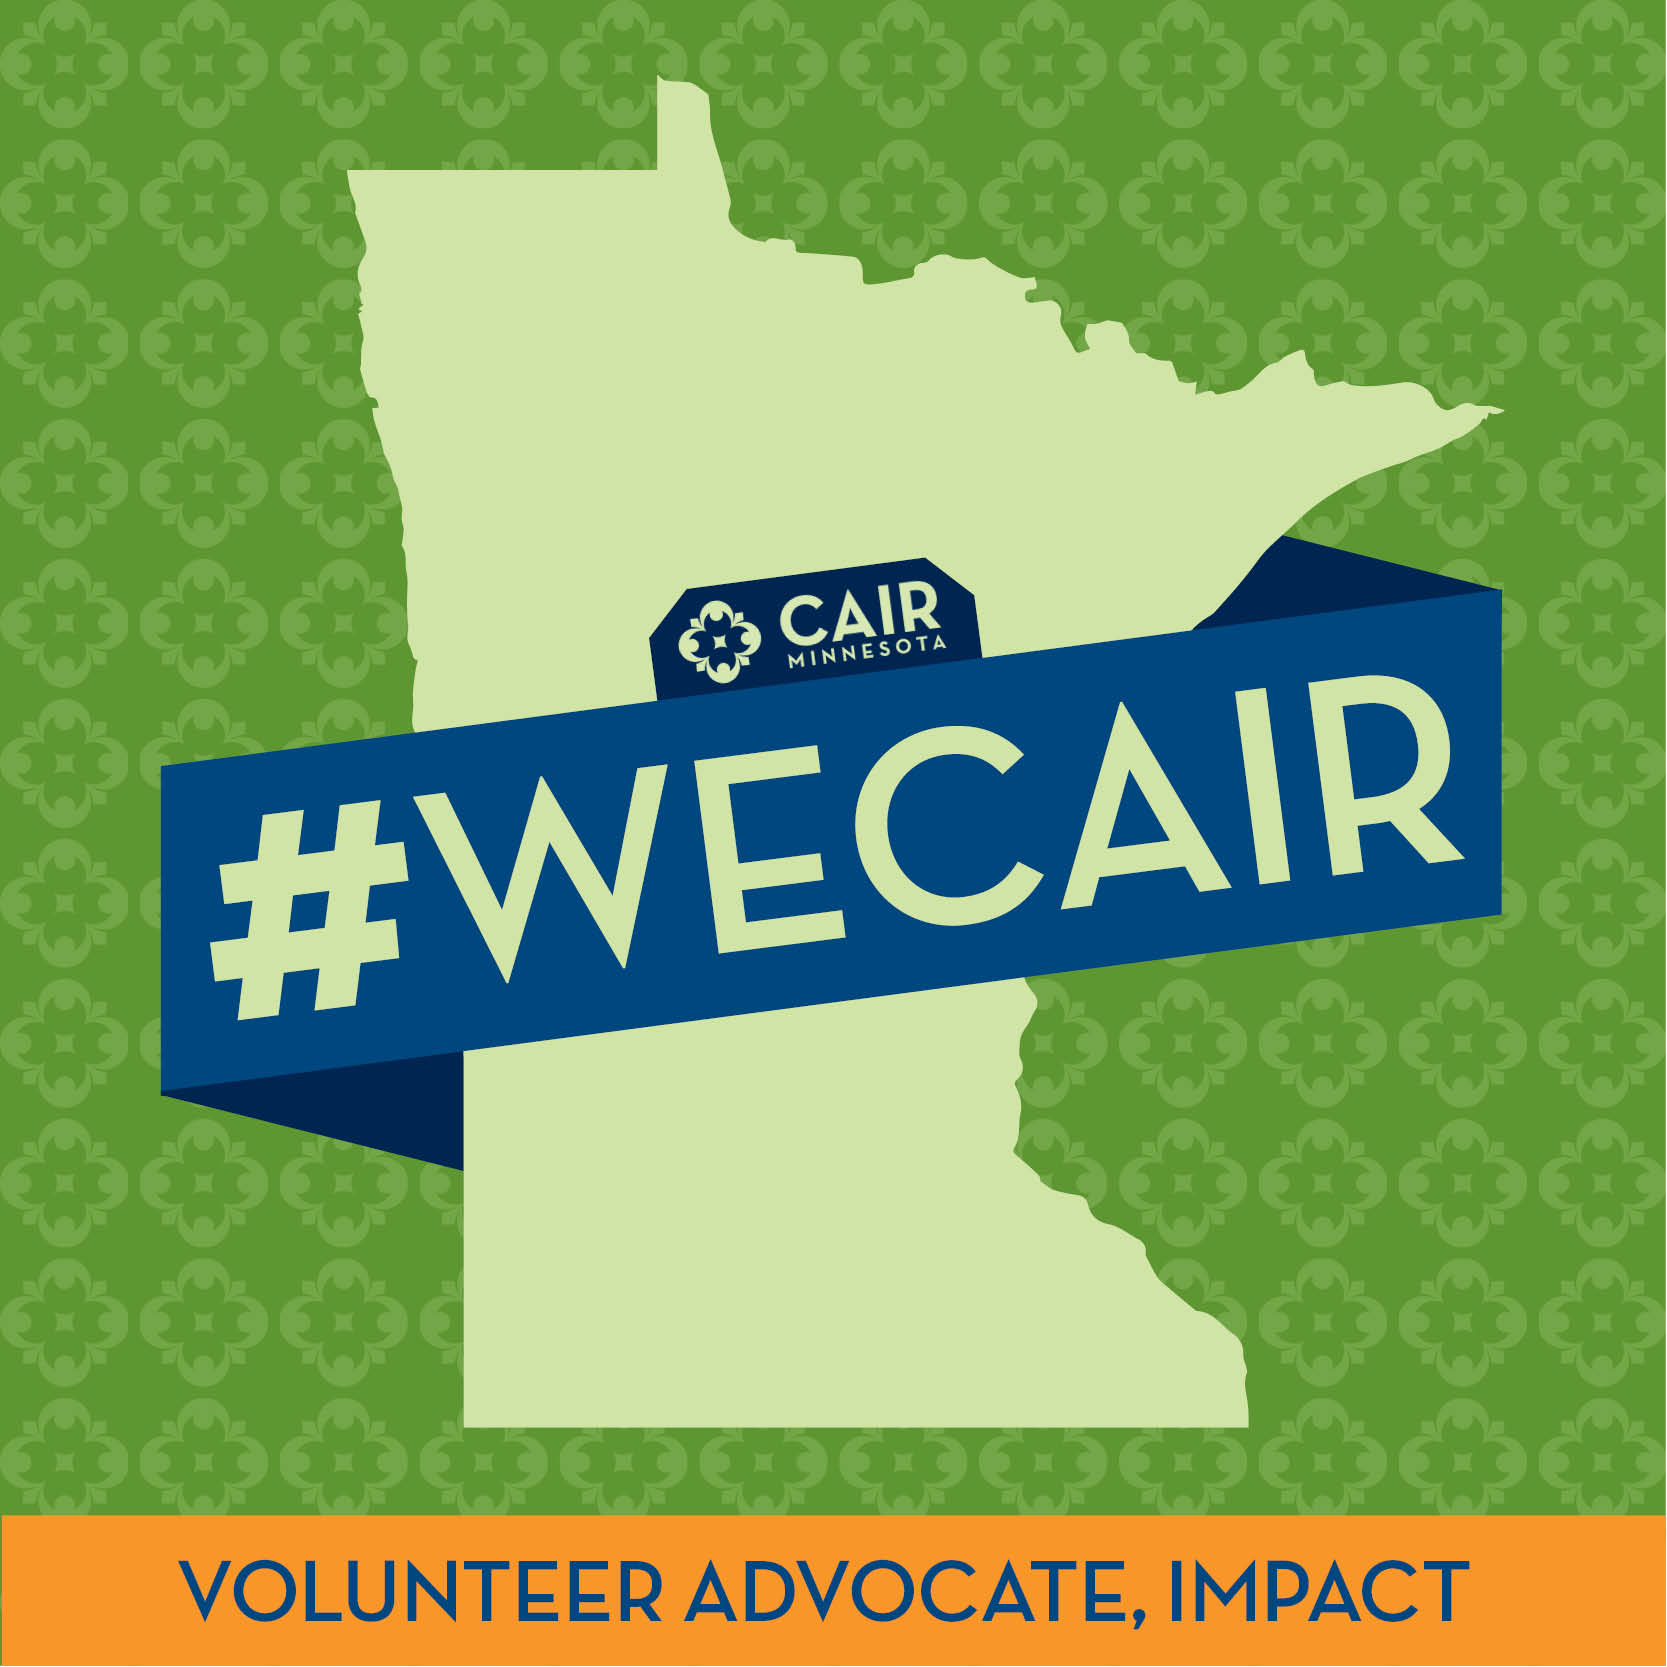 we cair campaign posts